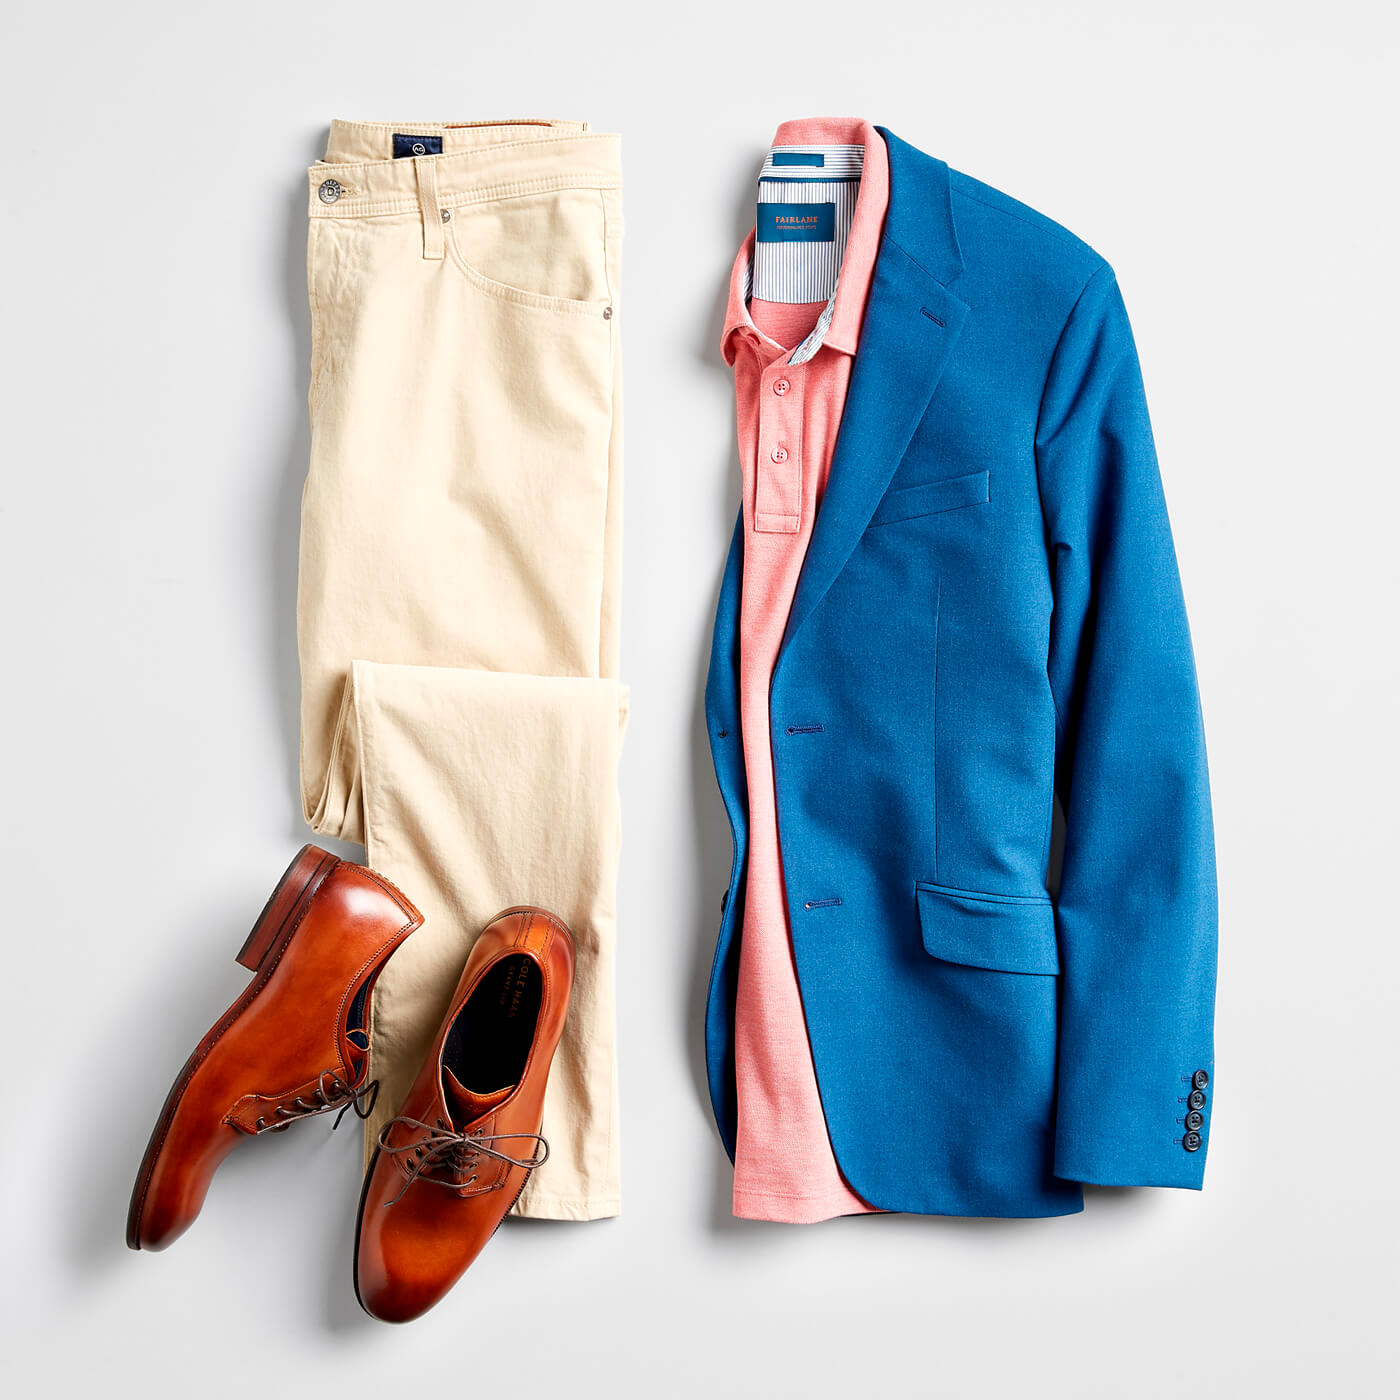 polo and blue blazer outfit